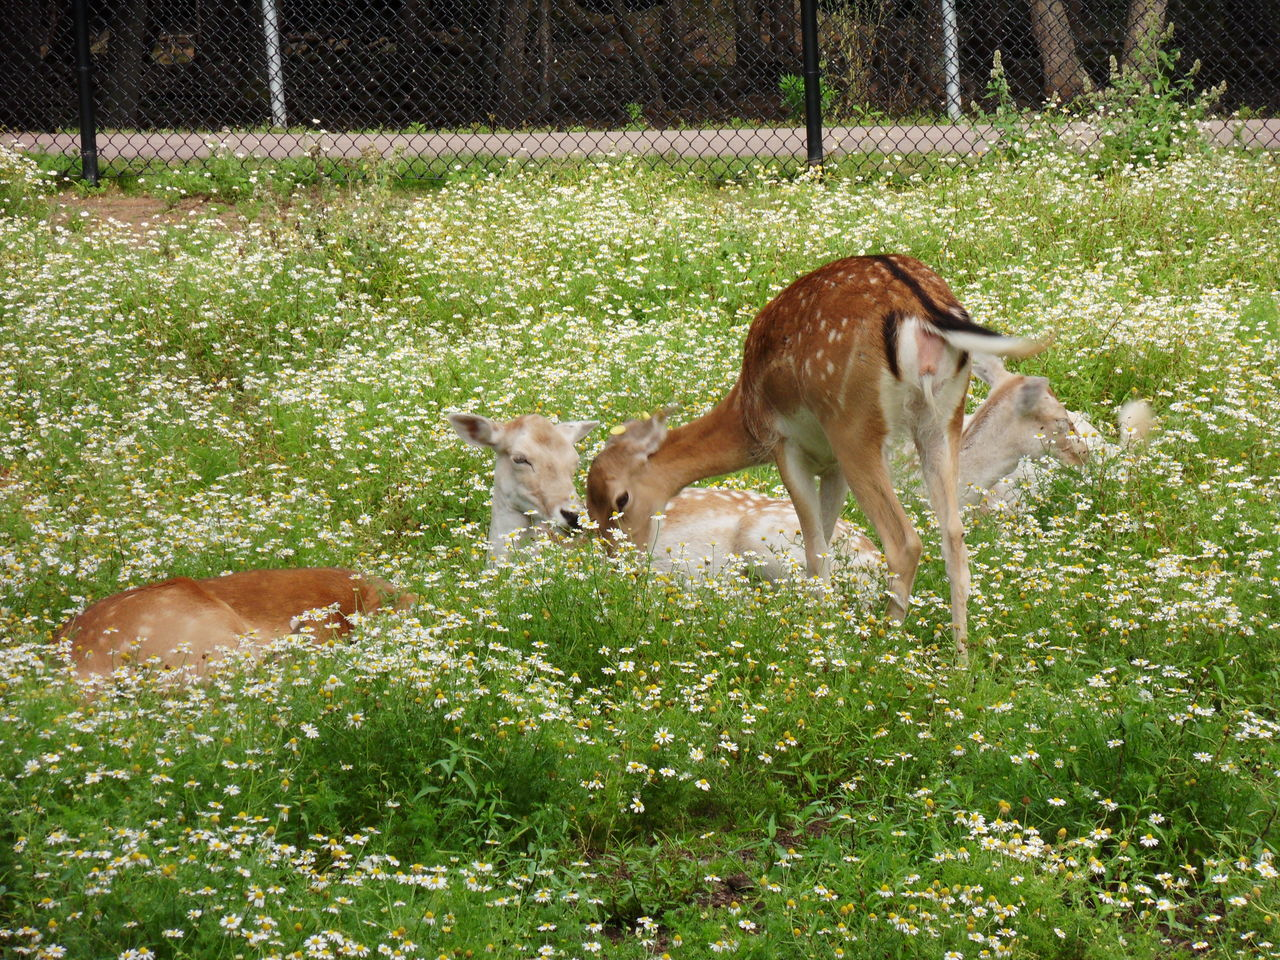 animal themes, grass, domestic animals, no people, mammal, nature, day, one animal, livestock, growth, outdoors